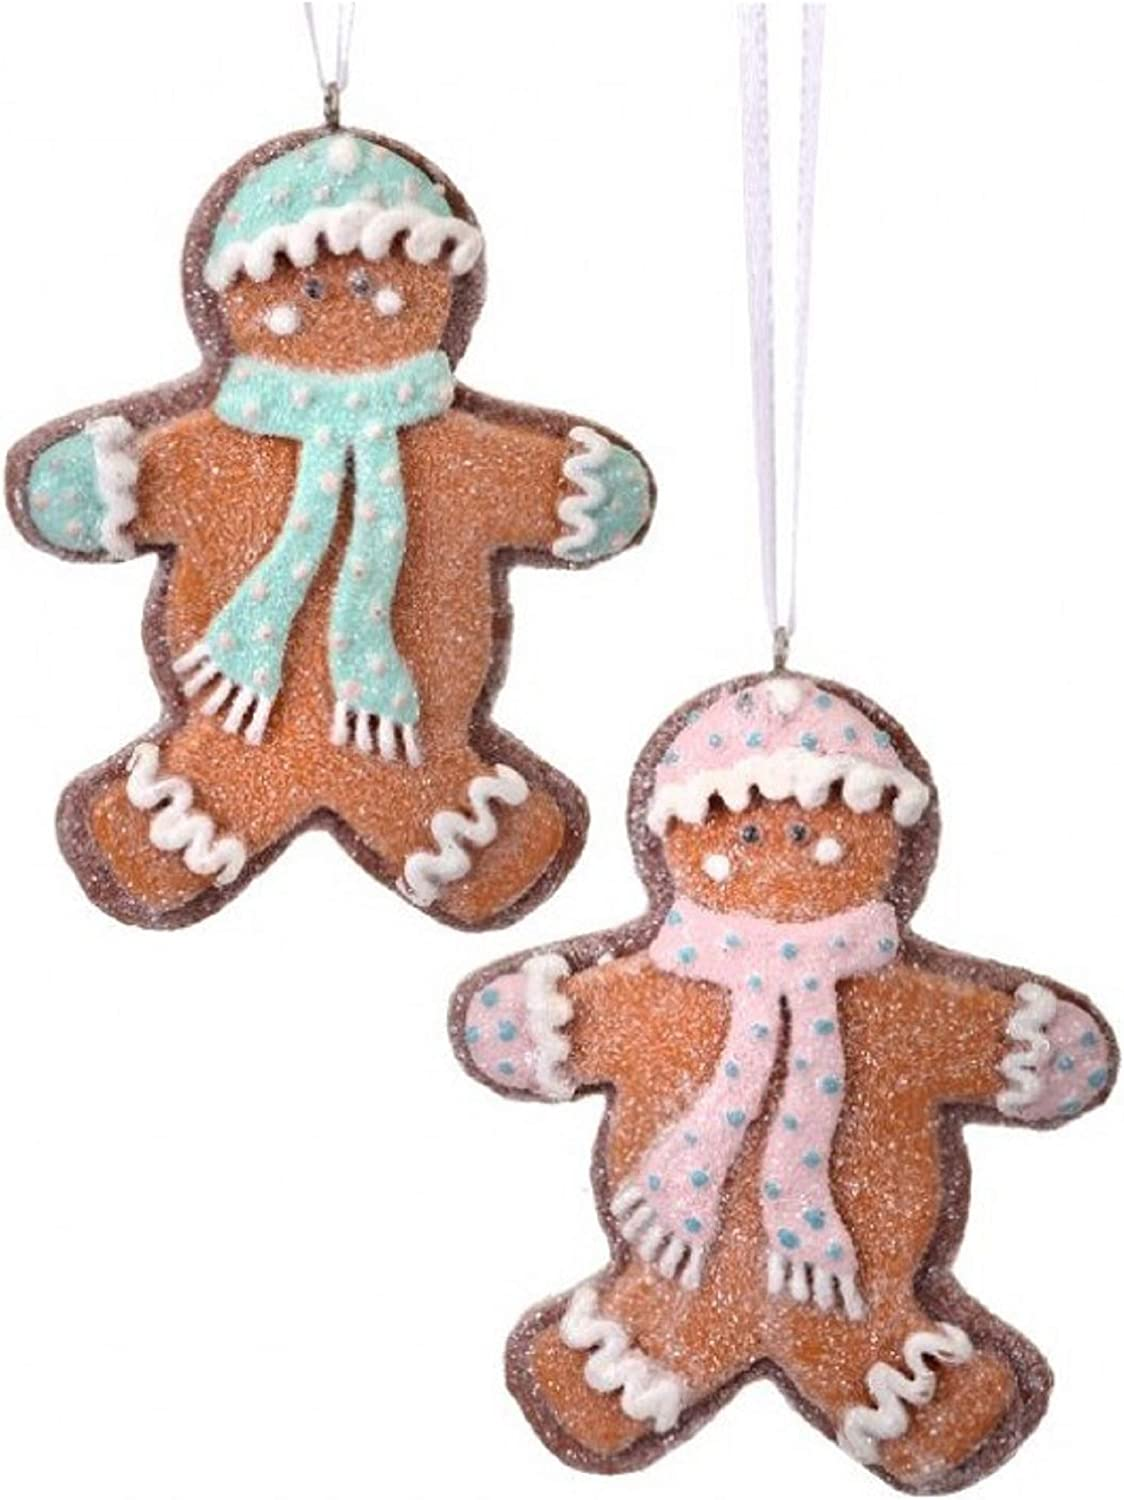 Regency International MTX61134 Resin Frosted Gingerbread Ornaments 2 Assorted 4 Inches, Pink and Blue